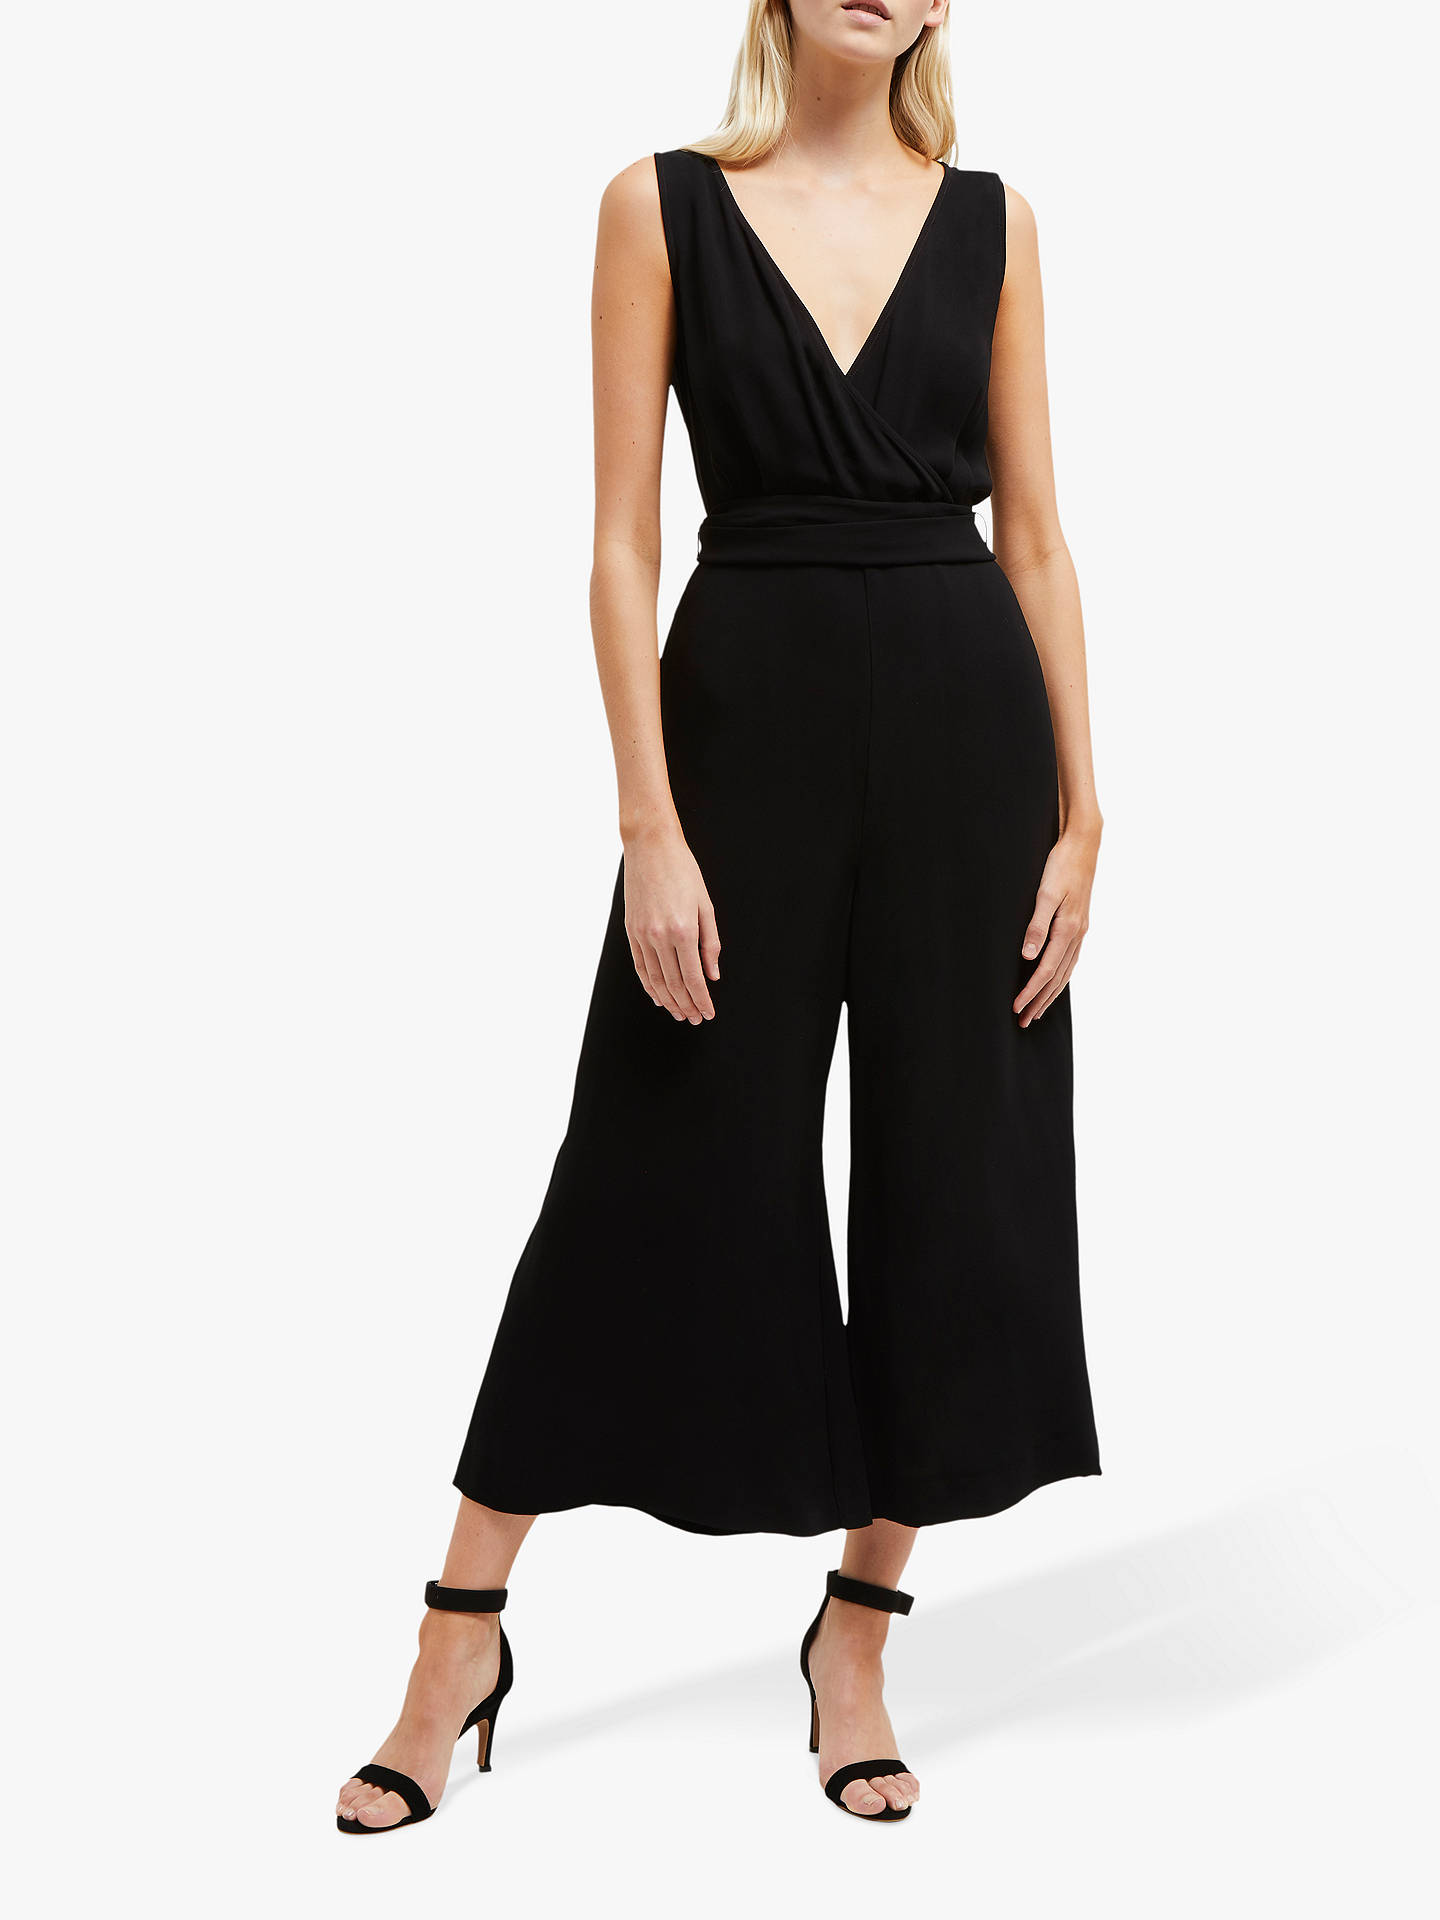 364635e1598 Buy French Connection Bessie Crepe Jumpsuit, Black, 6 Online at  johnlewis.com ...